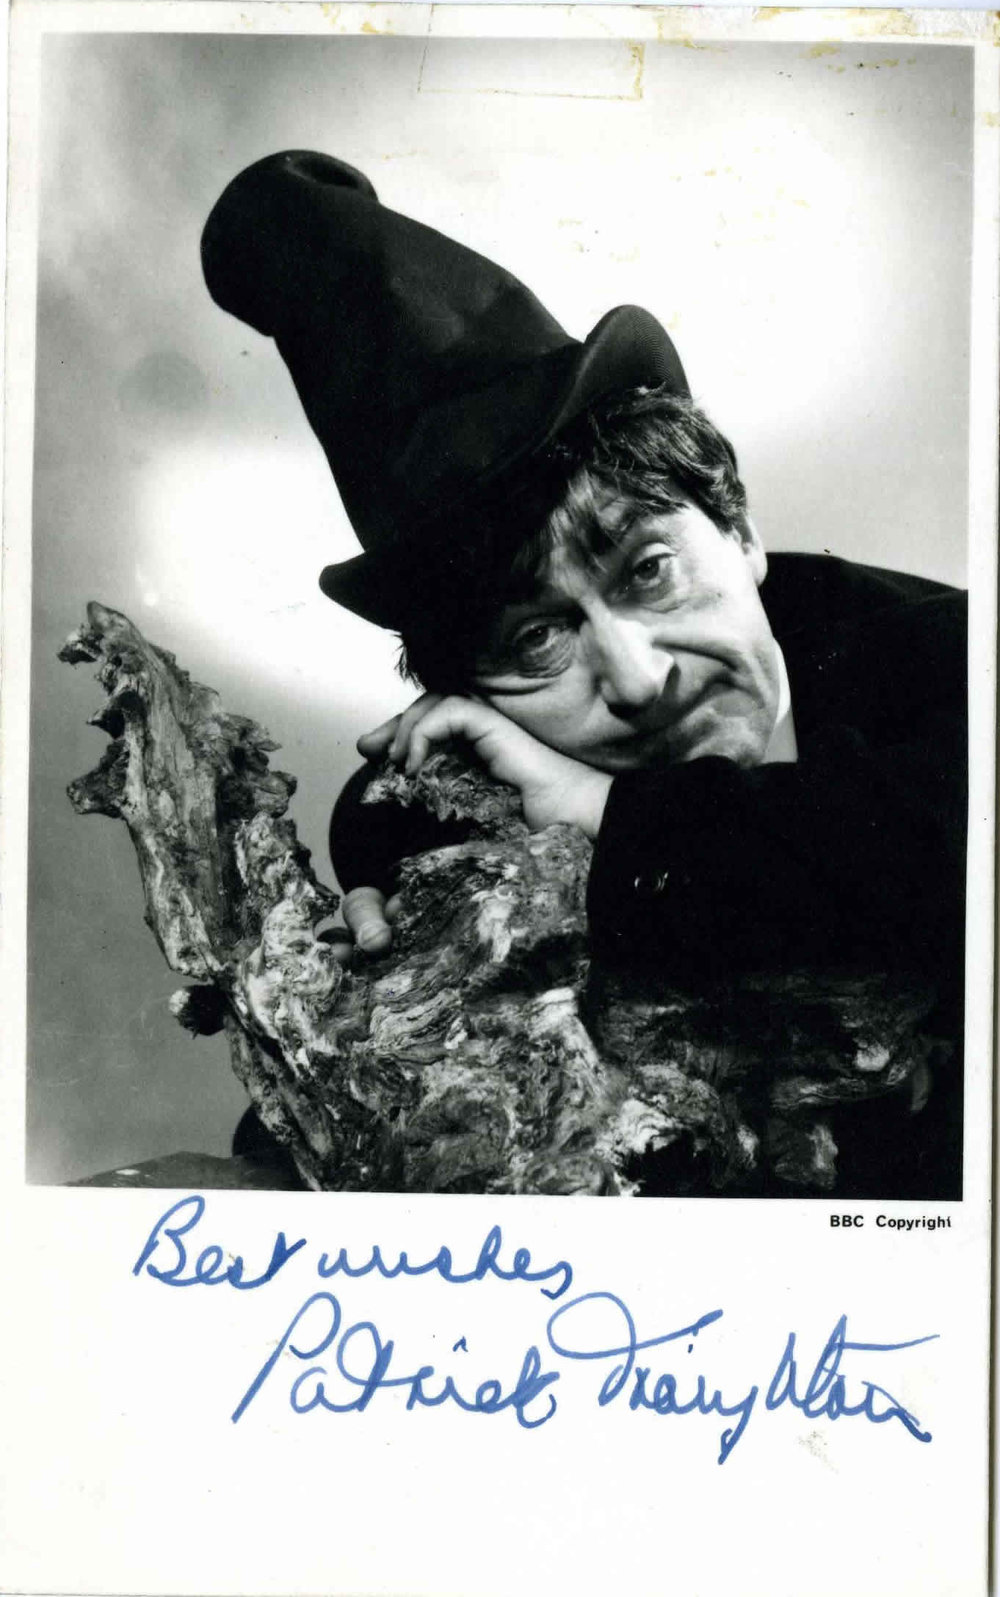 BBC Cast Card of Patrick Troughton as the Doctor